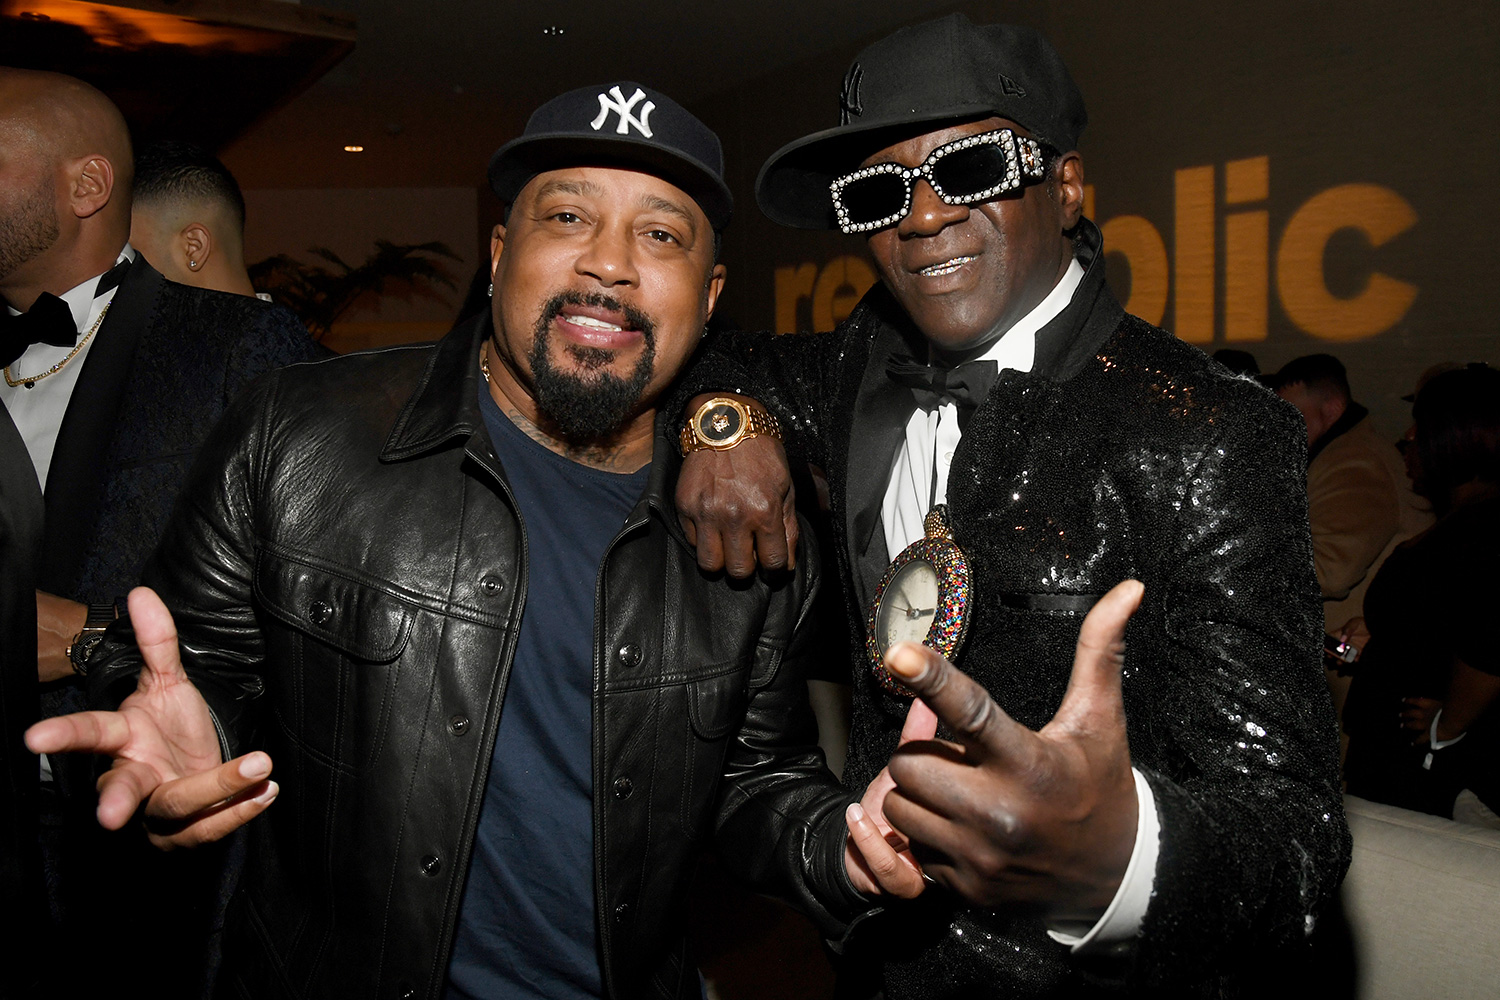 Daymond John and Flavor Flav